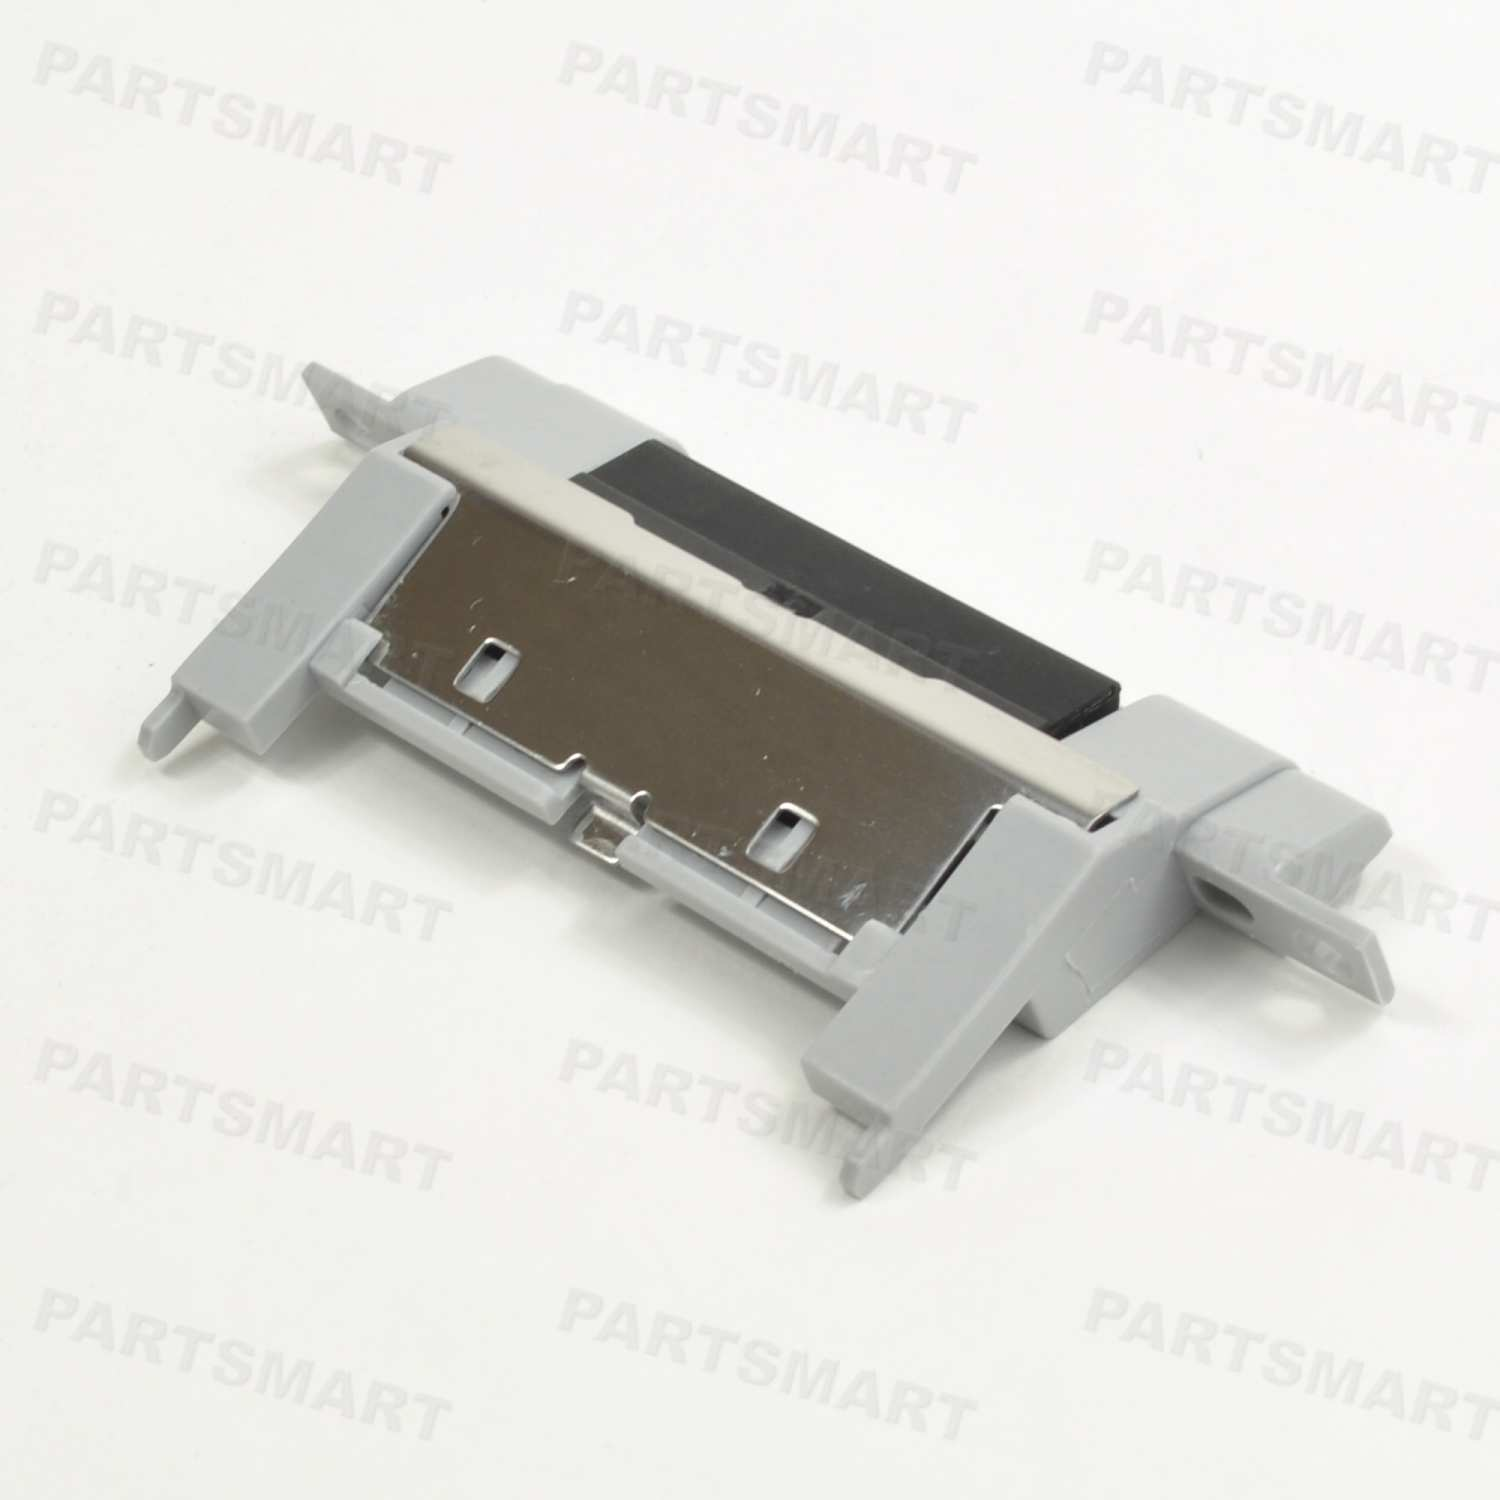 RM1-1298-000 Separation Pad Assy, Tray 2 for HP LaserJet 1320, LaserJet 2400